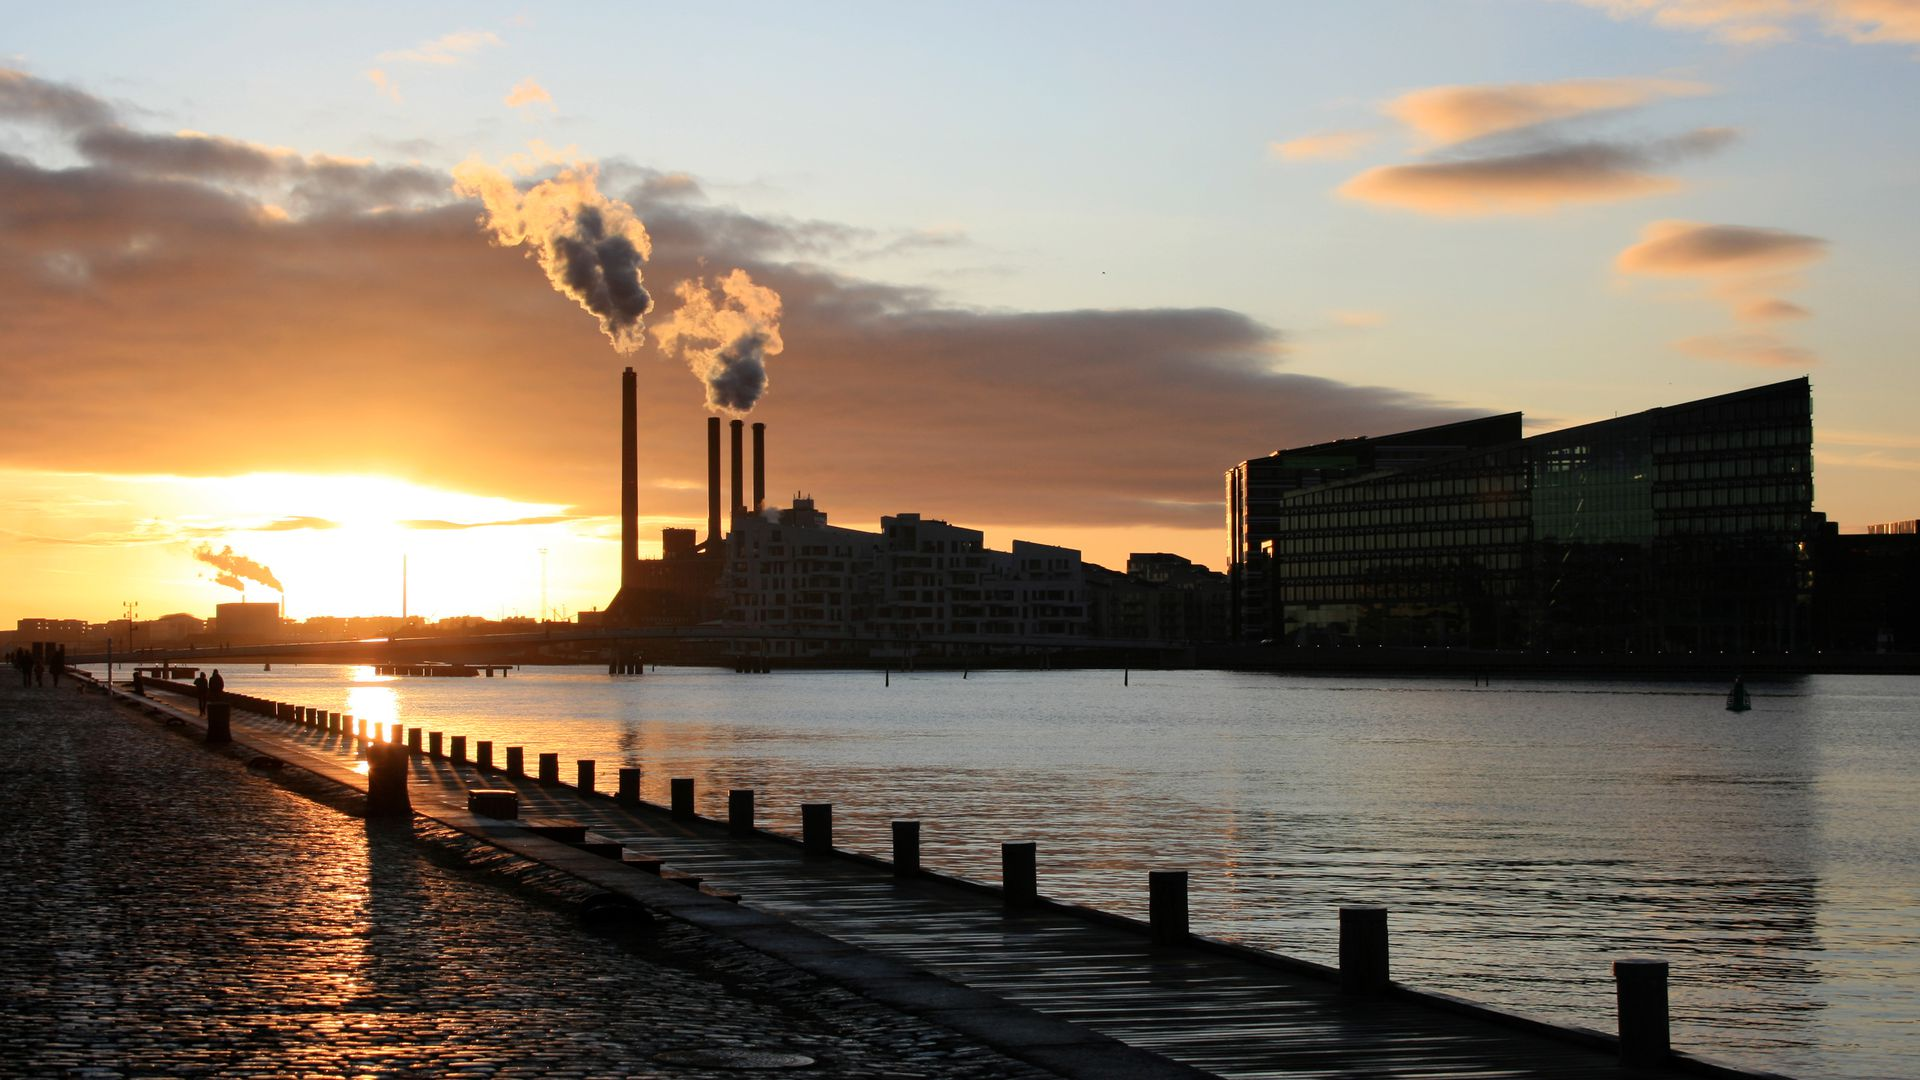 Ørsted Power Station, situated at Sydhavnen in Copenhagen